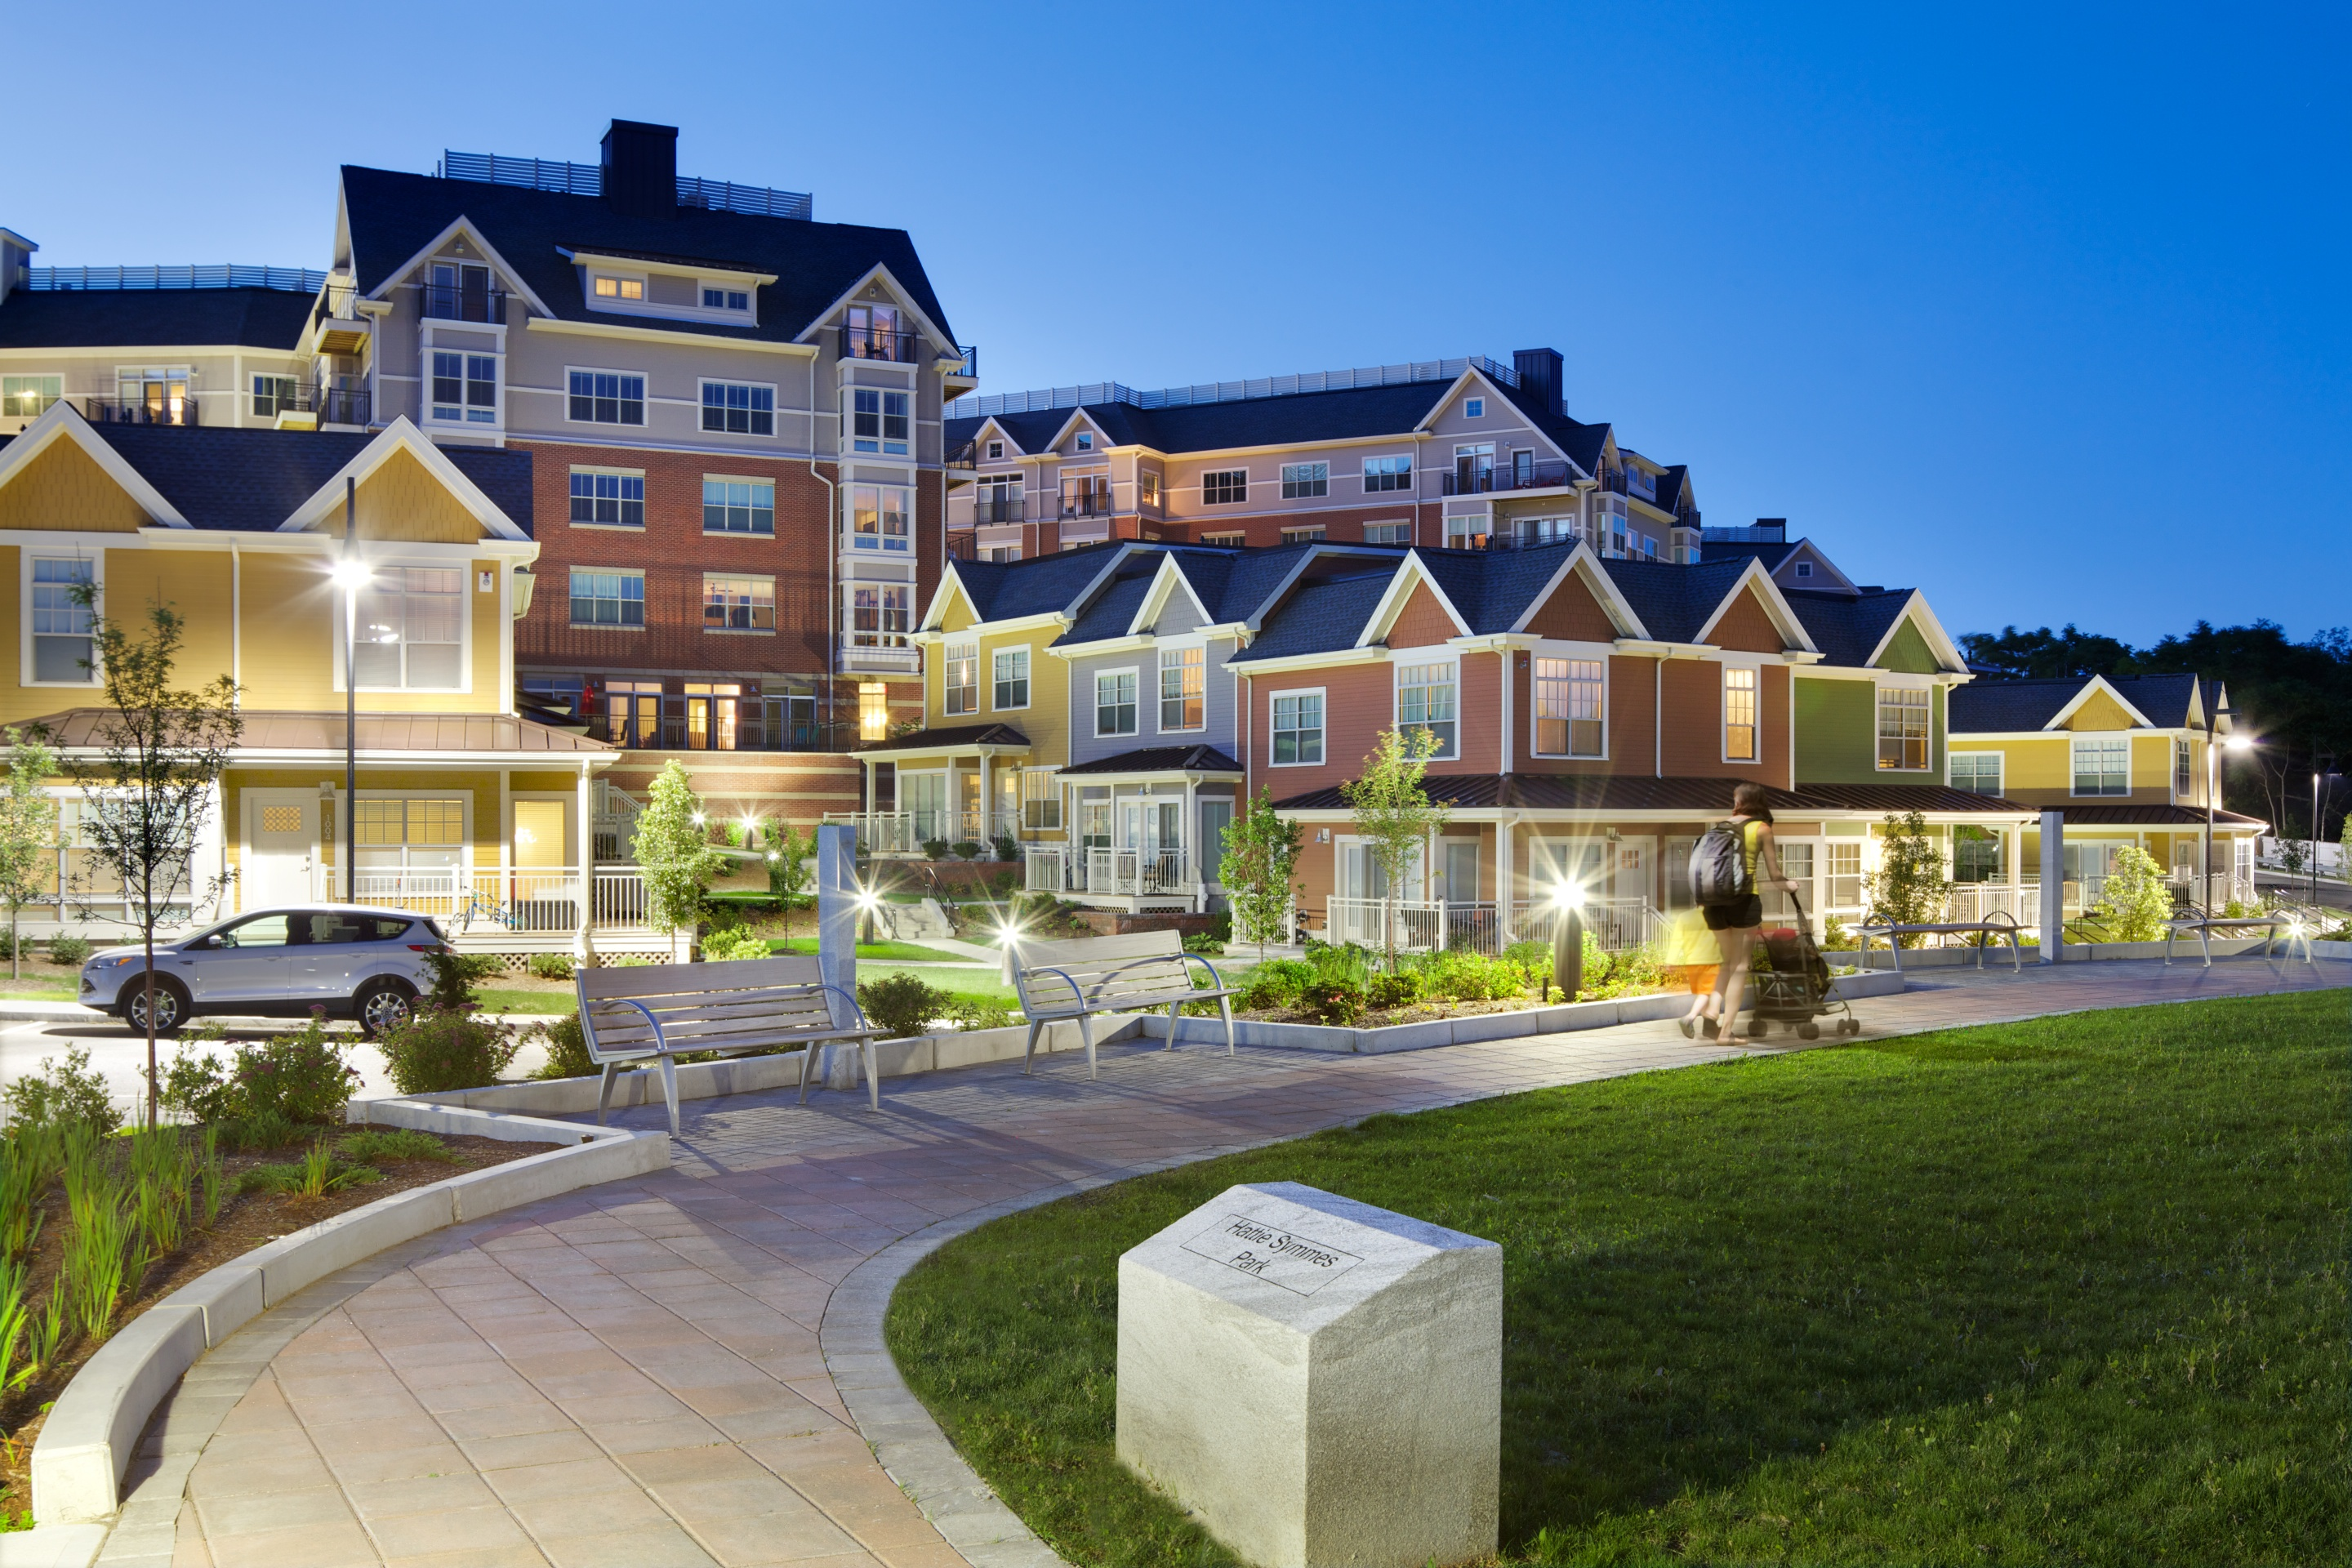 Arlington (MA) United States  city photos gallery : Architect | The Architectural Team, Arlington, MA, United States ...